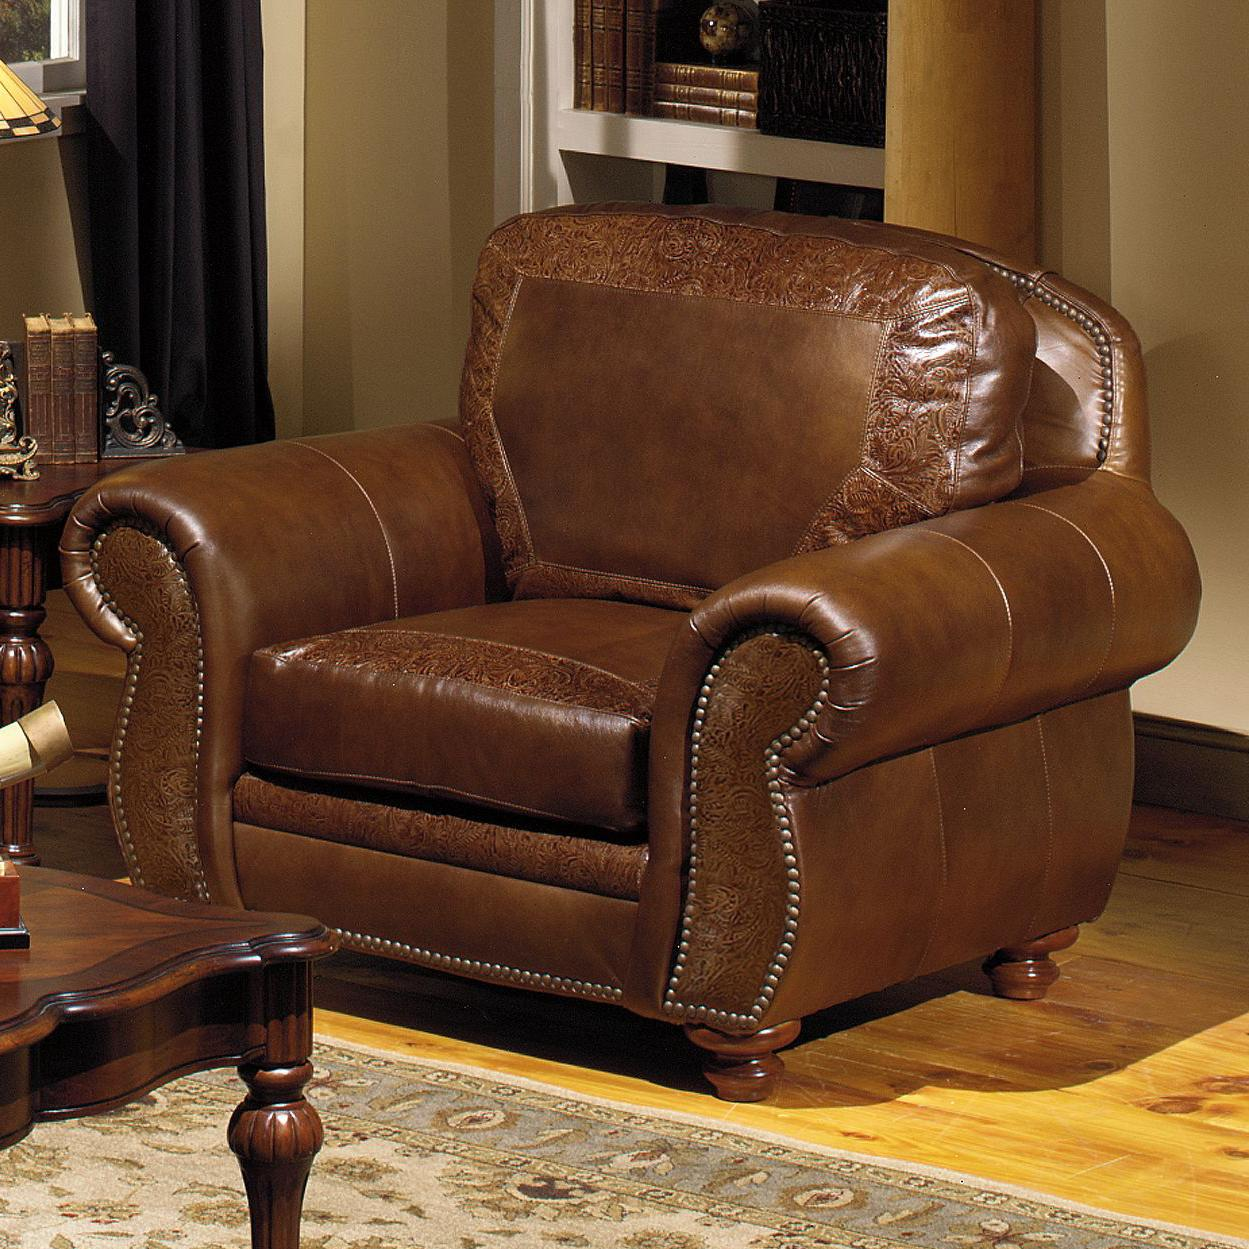 Usa premium leather 8555 traditional leather chair with for Traditional leather sofas furniture